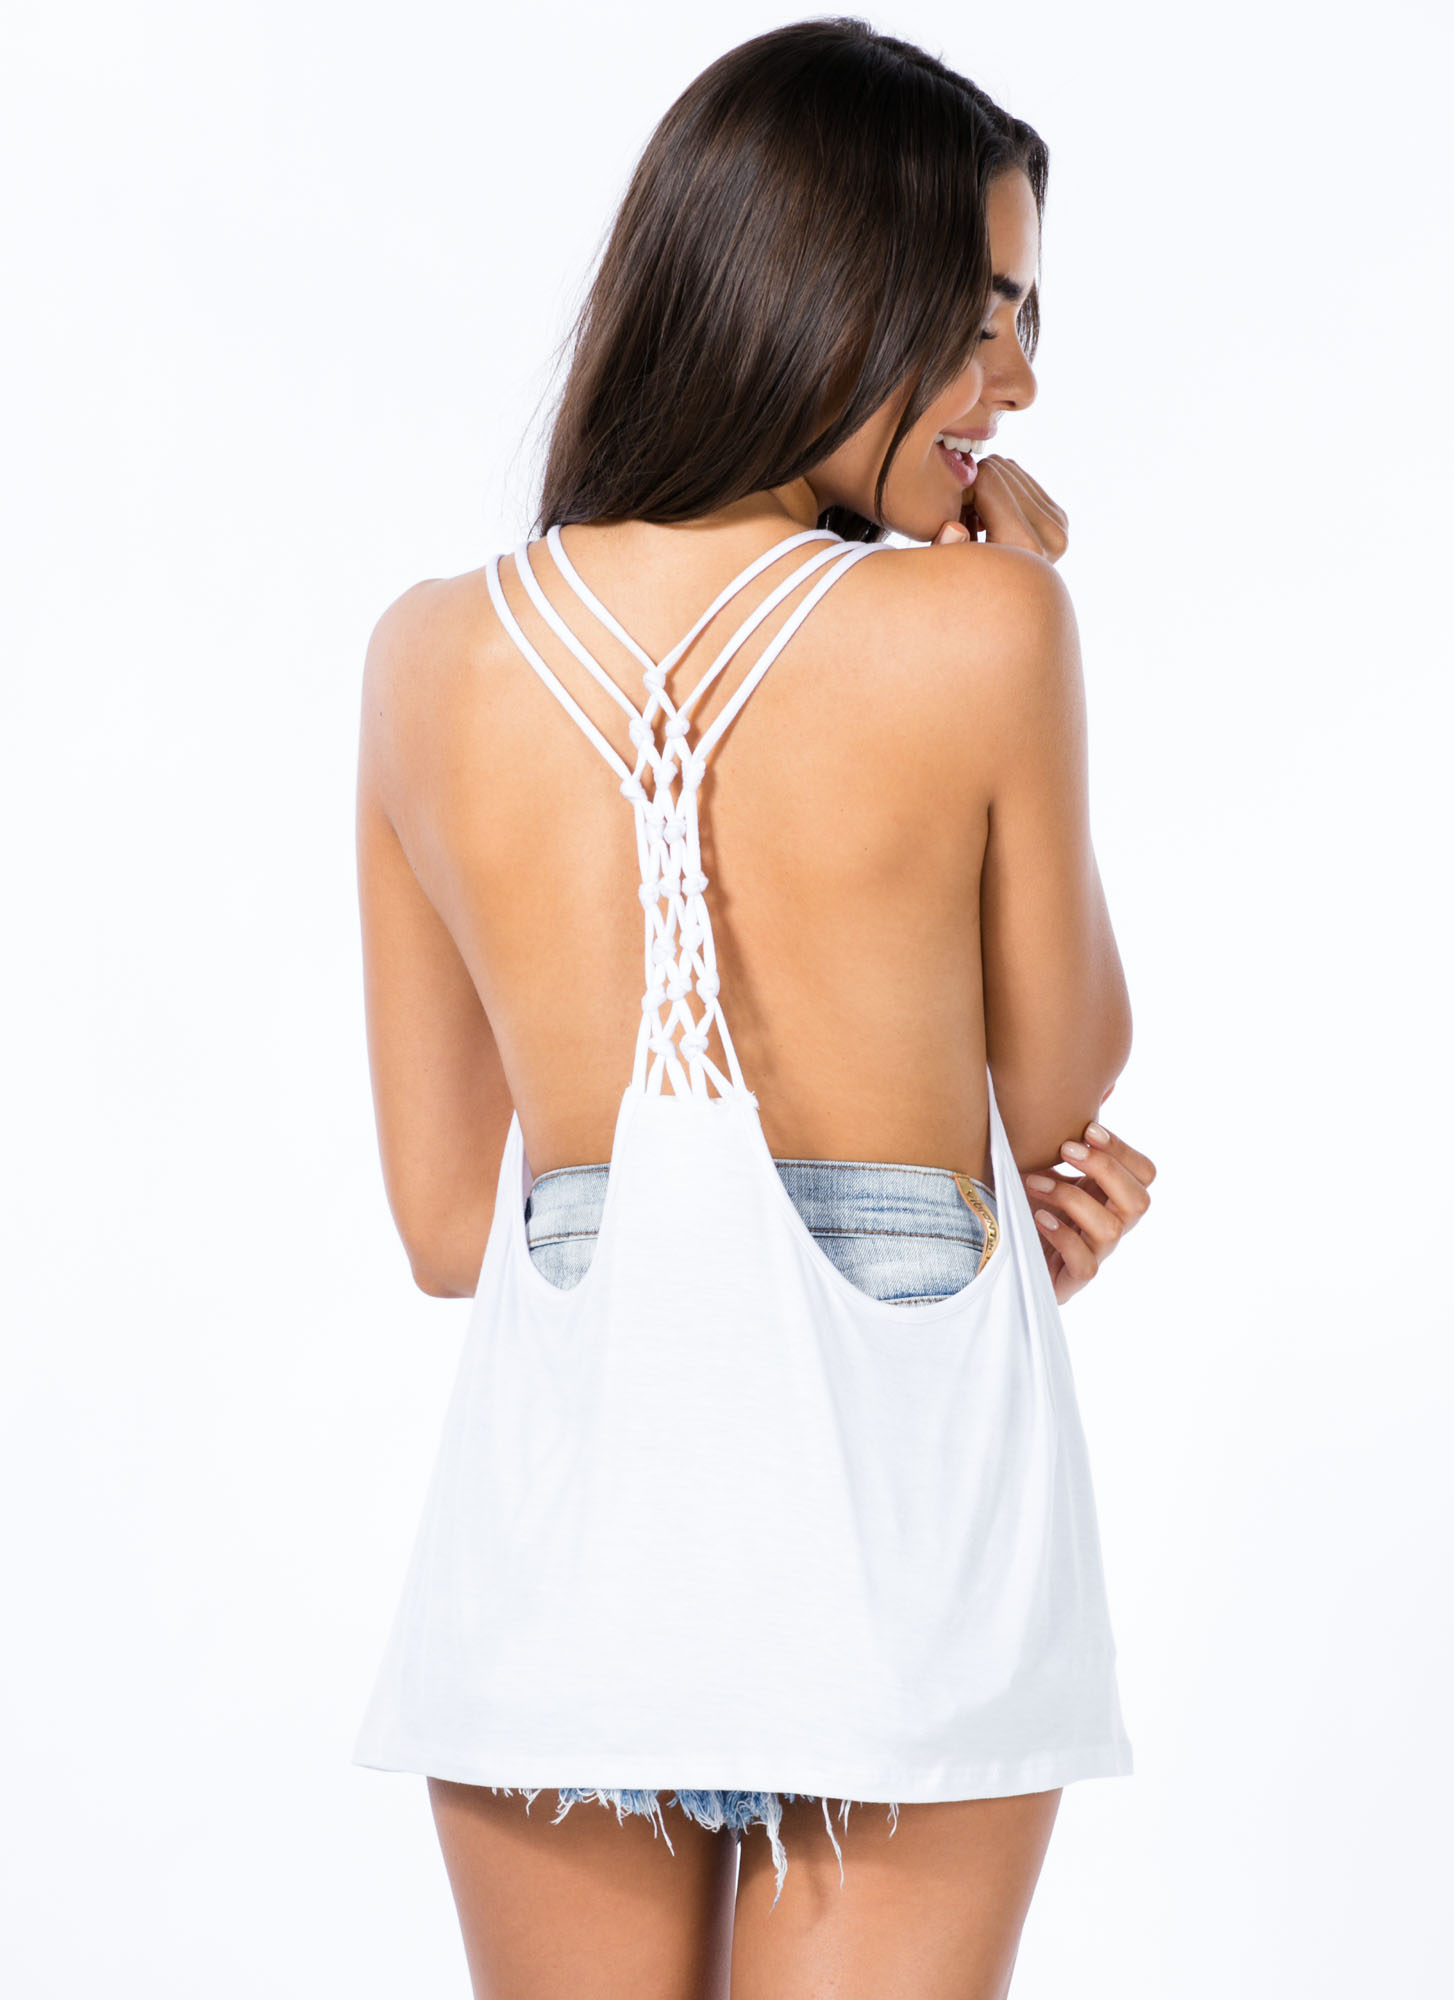 Knotty Girl Tank Top WHITE